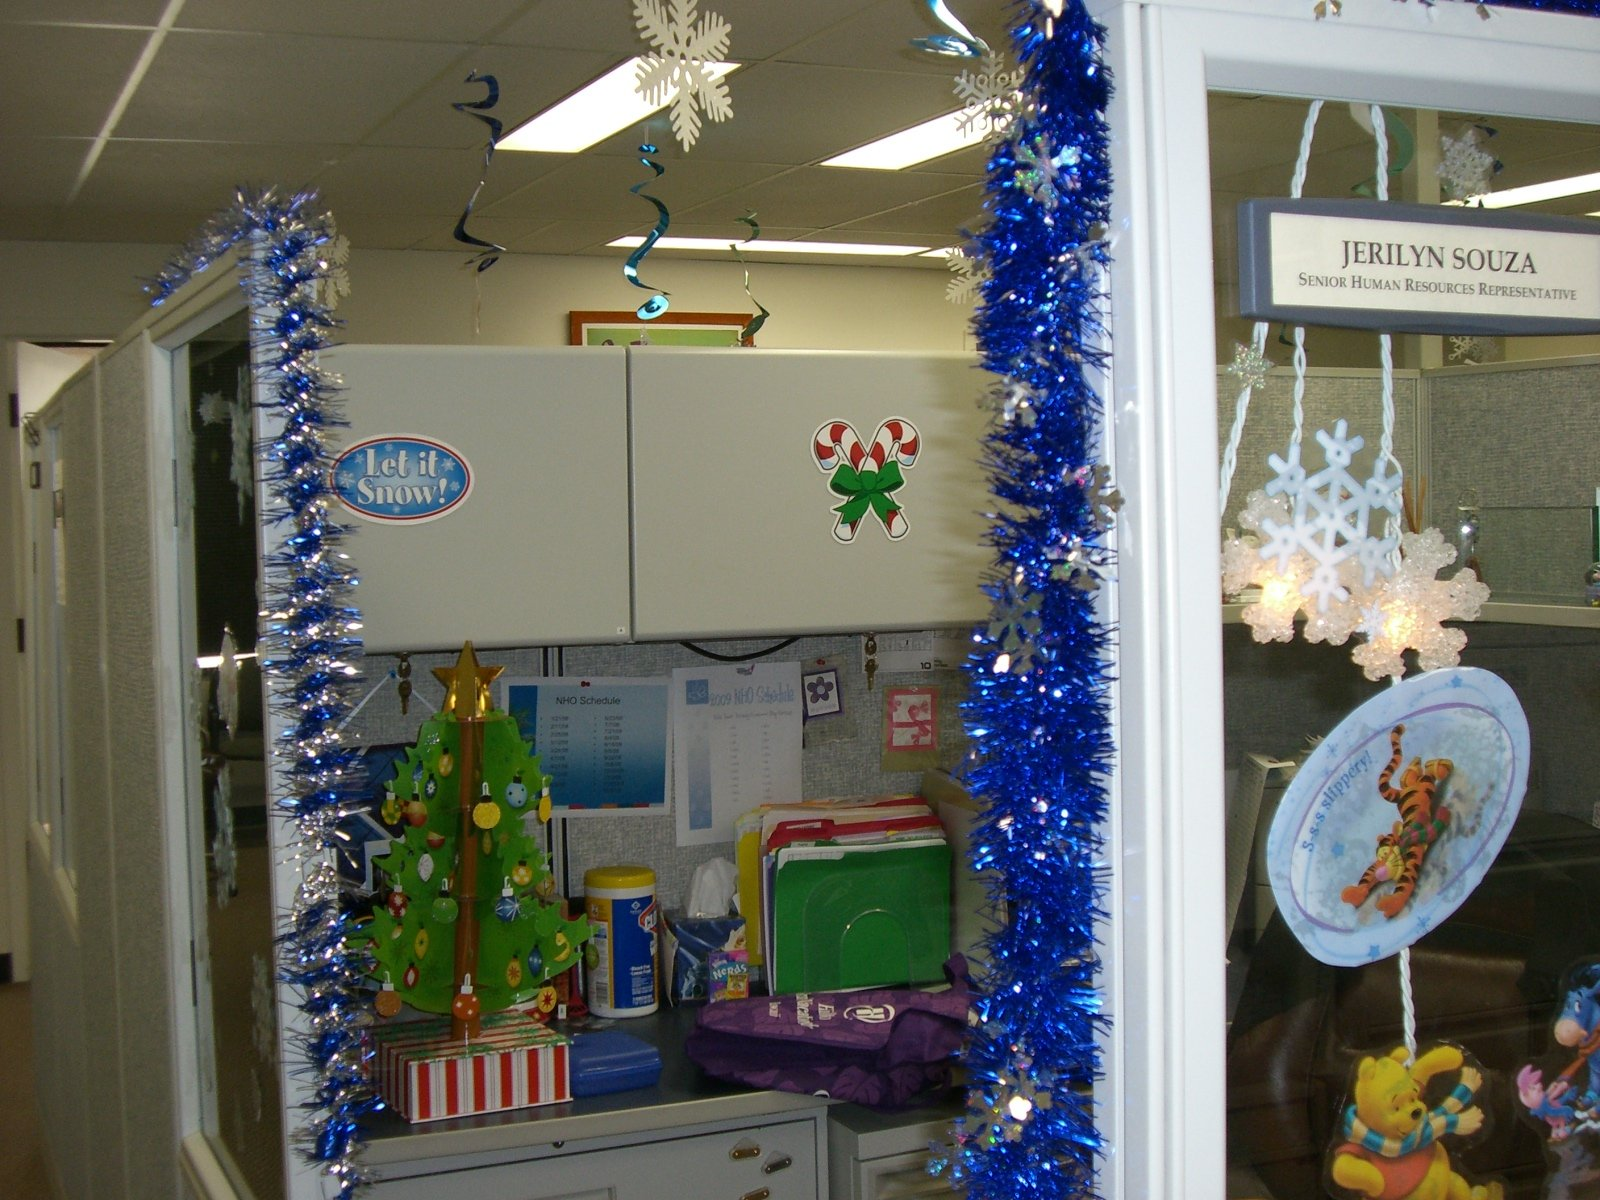 Brilliant Some Companies Have Office Christmas Decorating Contests To Help Employees Get Into The Holiday Spirit When You Consider Door Decorating Ideas, Try To Incorporate Your Department With The Theme Materials Found Around Your Work